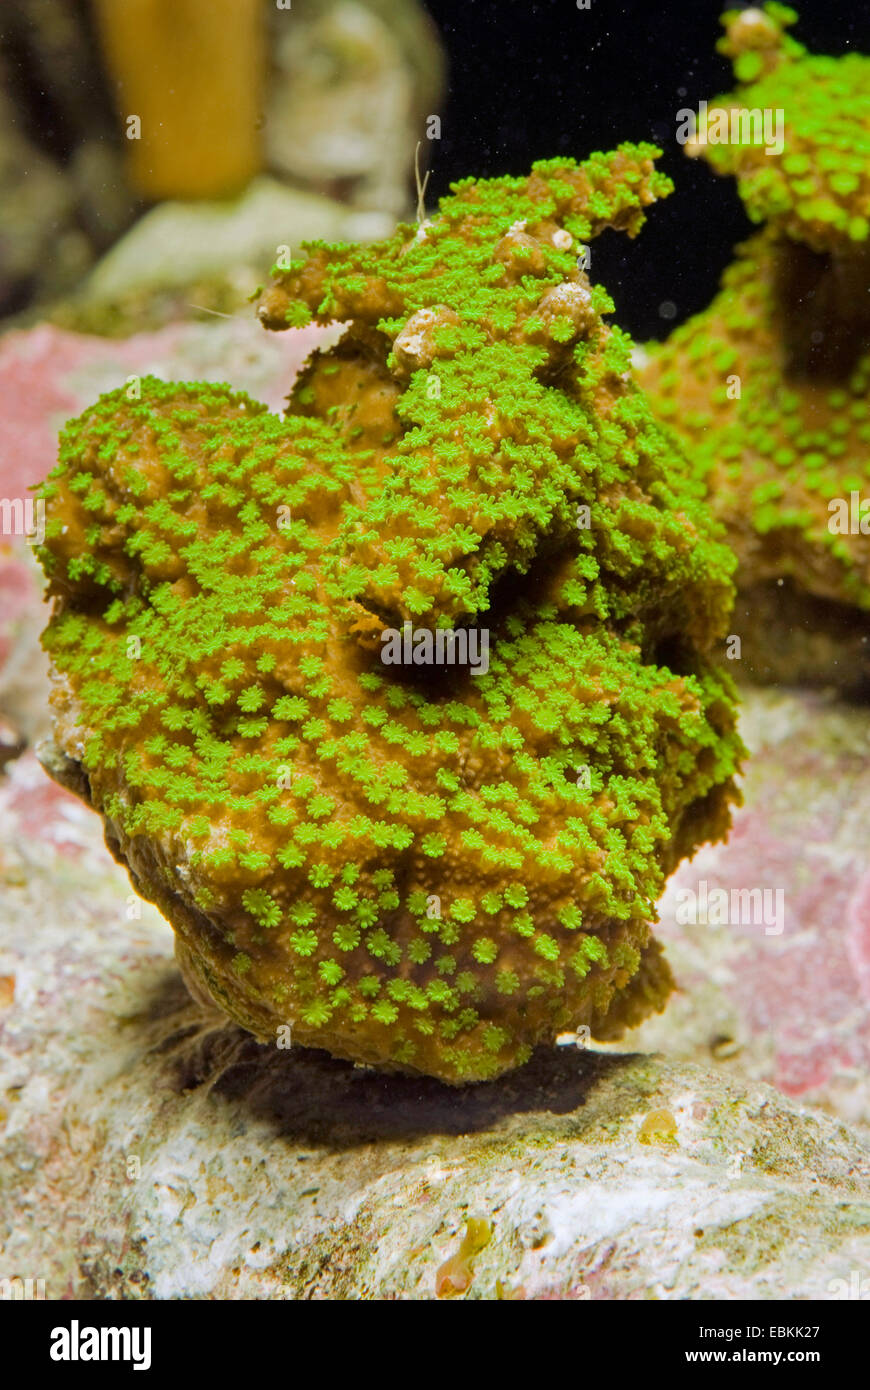 Stony Coral (Montipora hoffmeisteri), side view - Stock Image